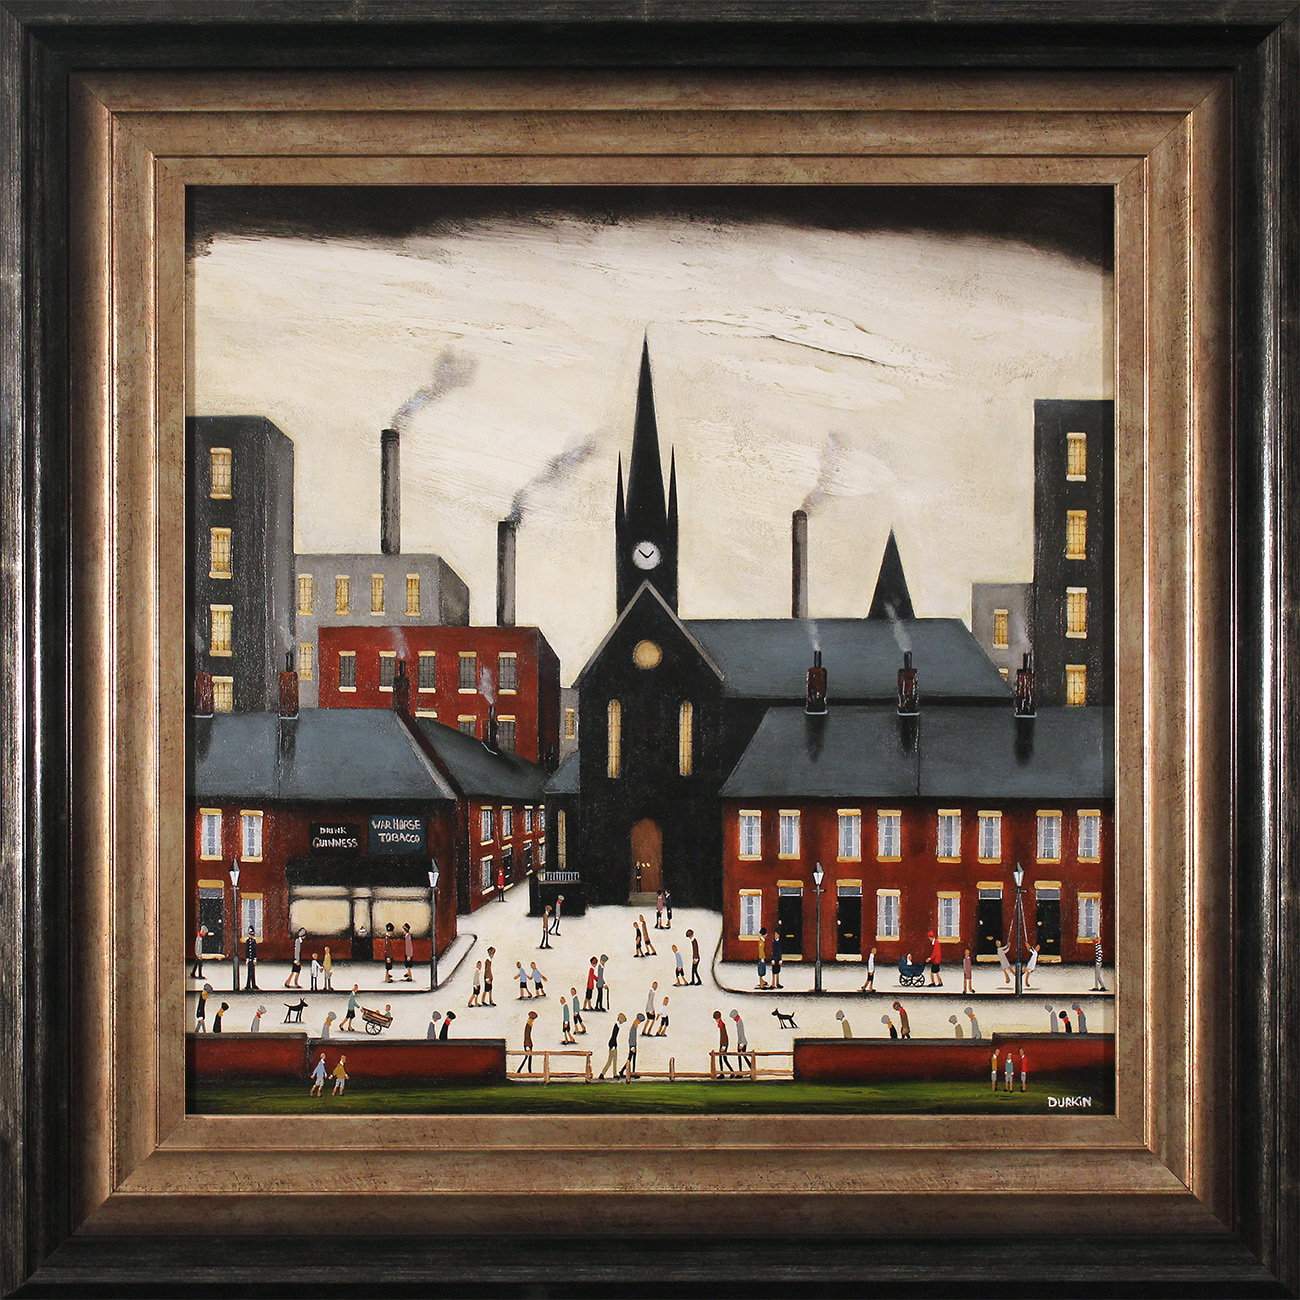 Sean Durkin, Original oil painting on panel, Stories from the Square, click to enlarge